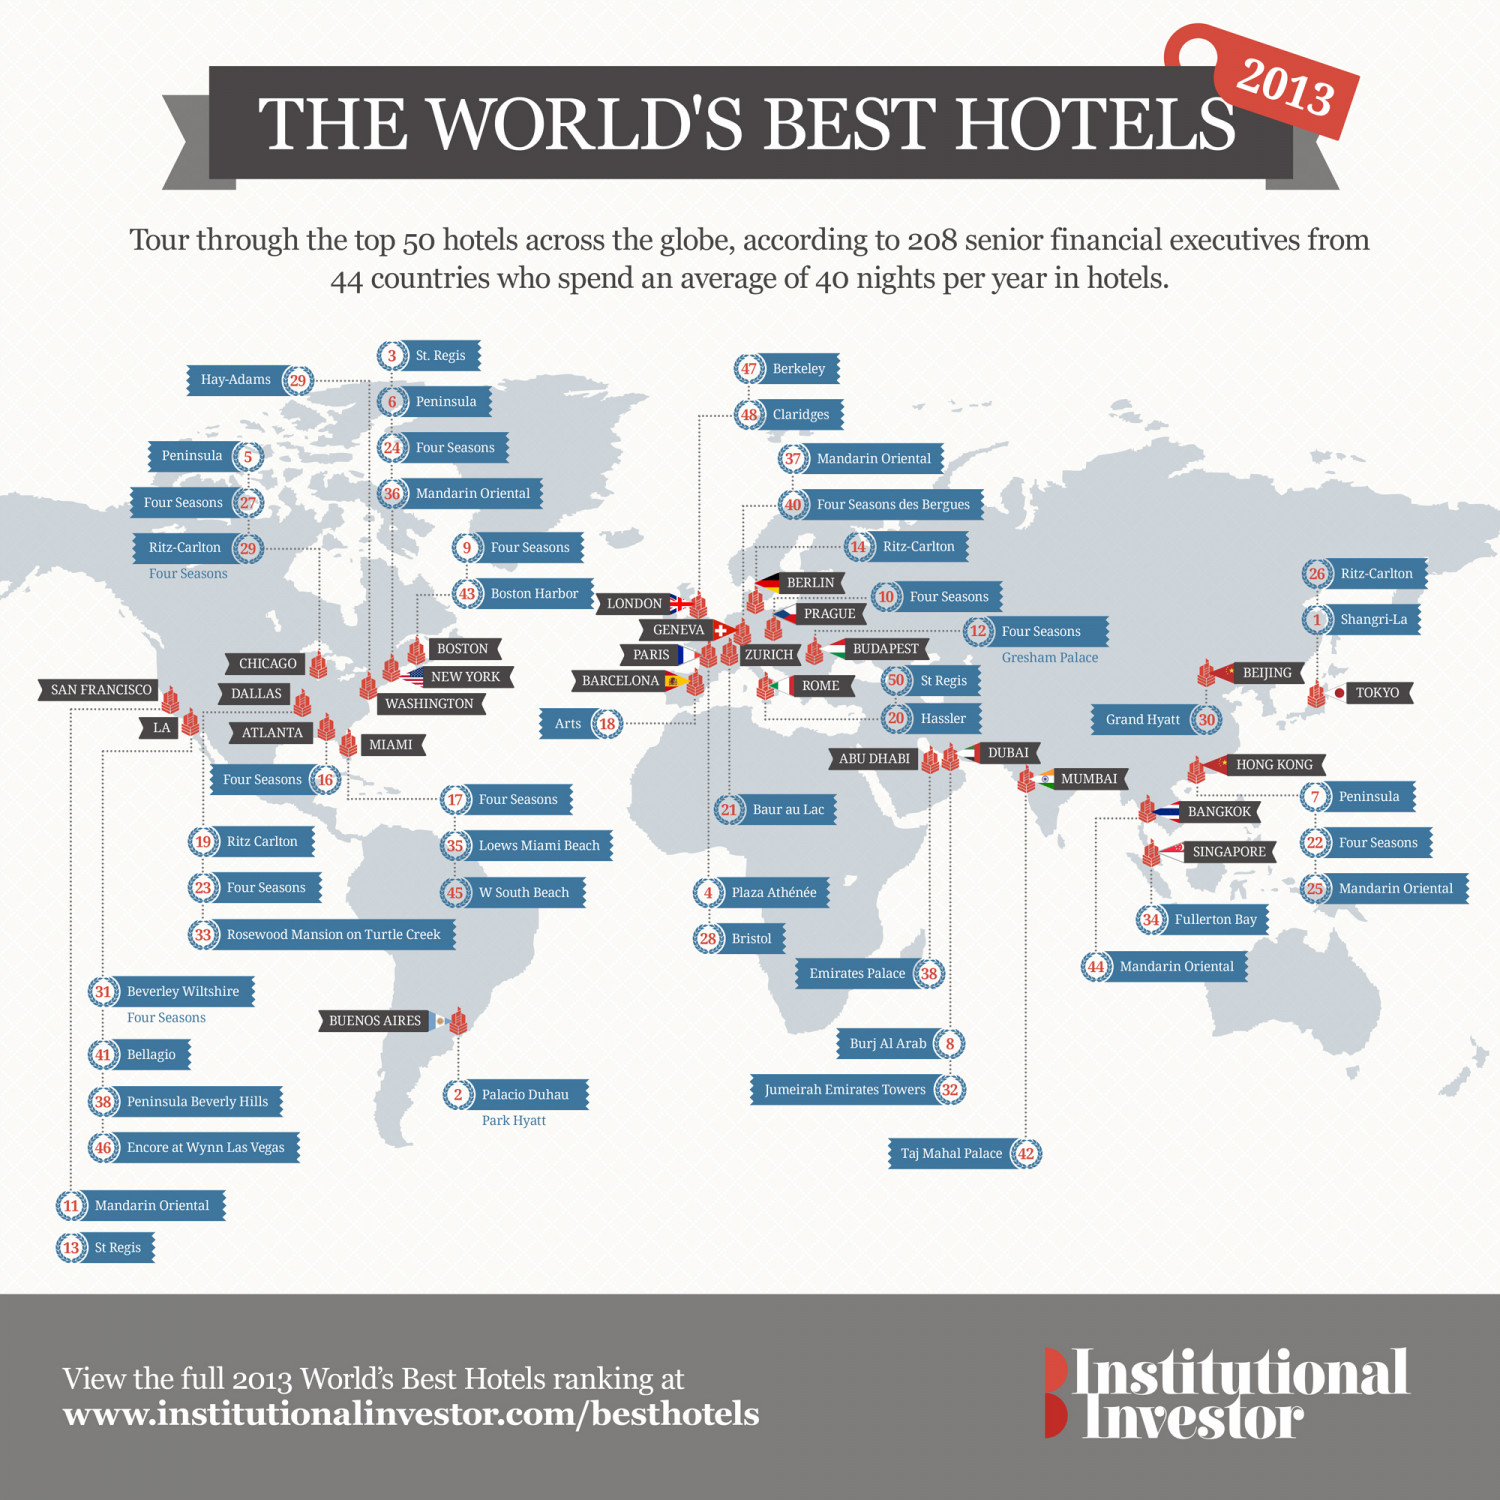 The World's Best Hotels of 2013 Infographic